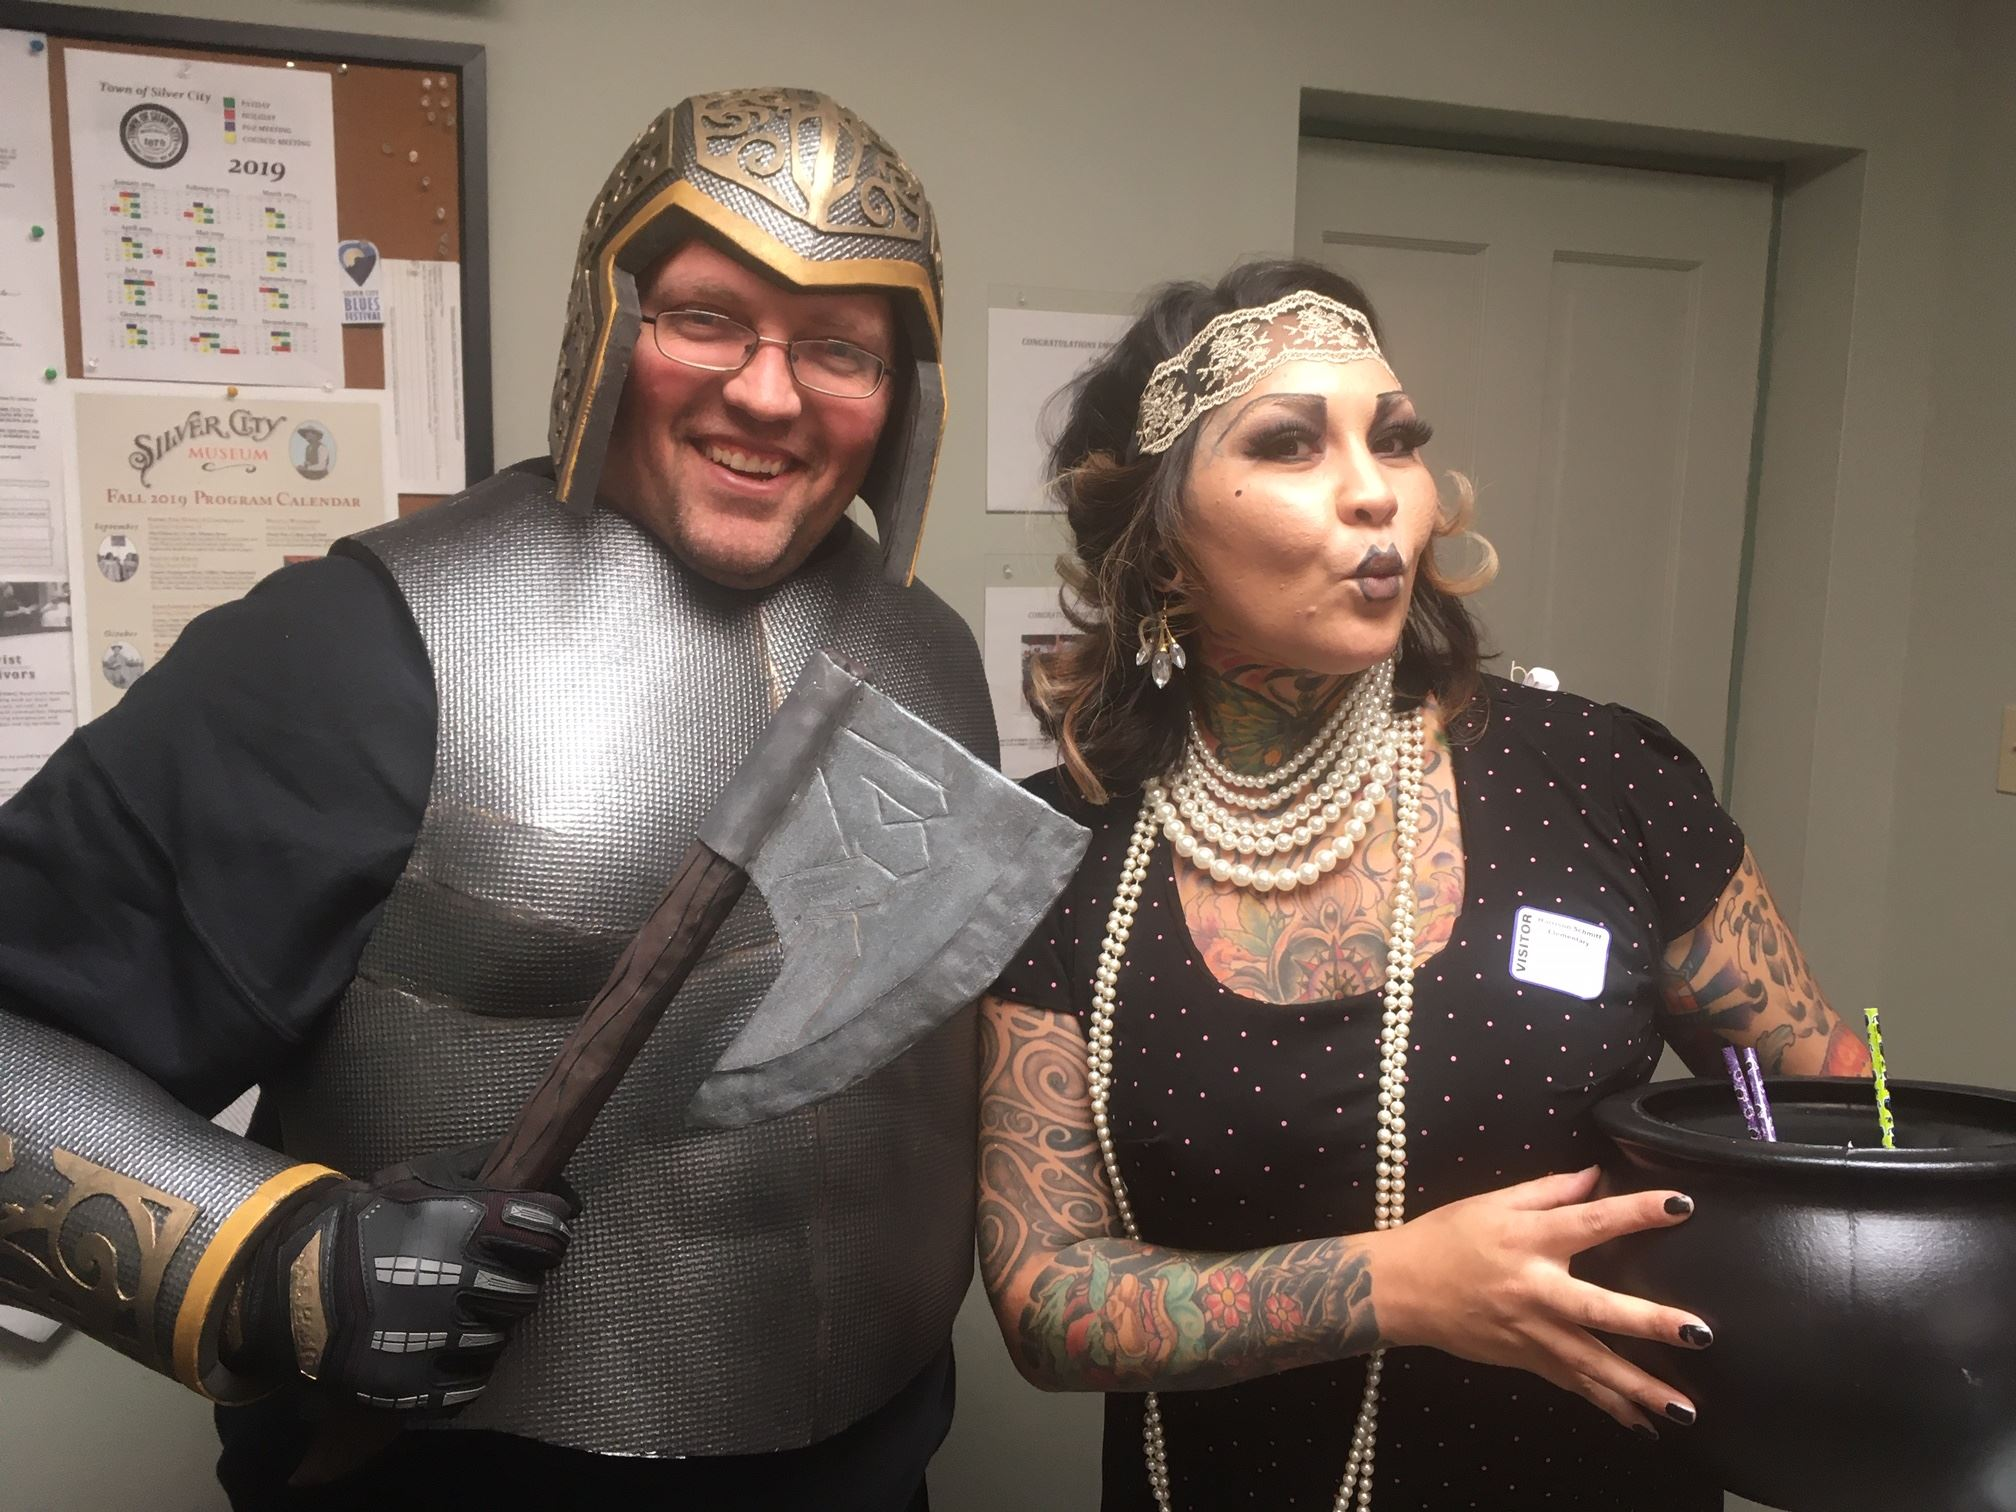 Joe and Veronica at a Halloween event